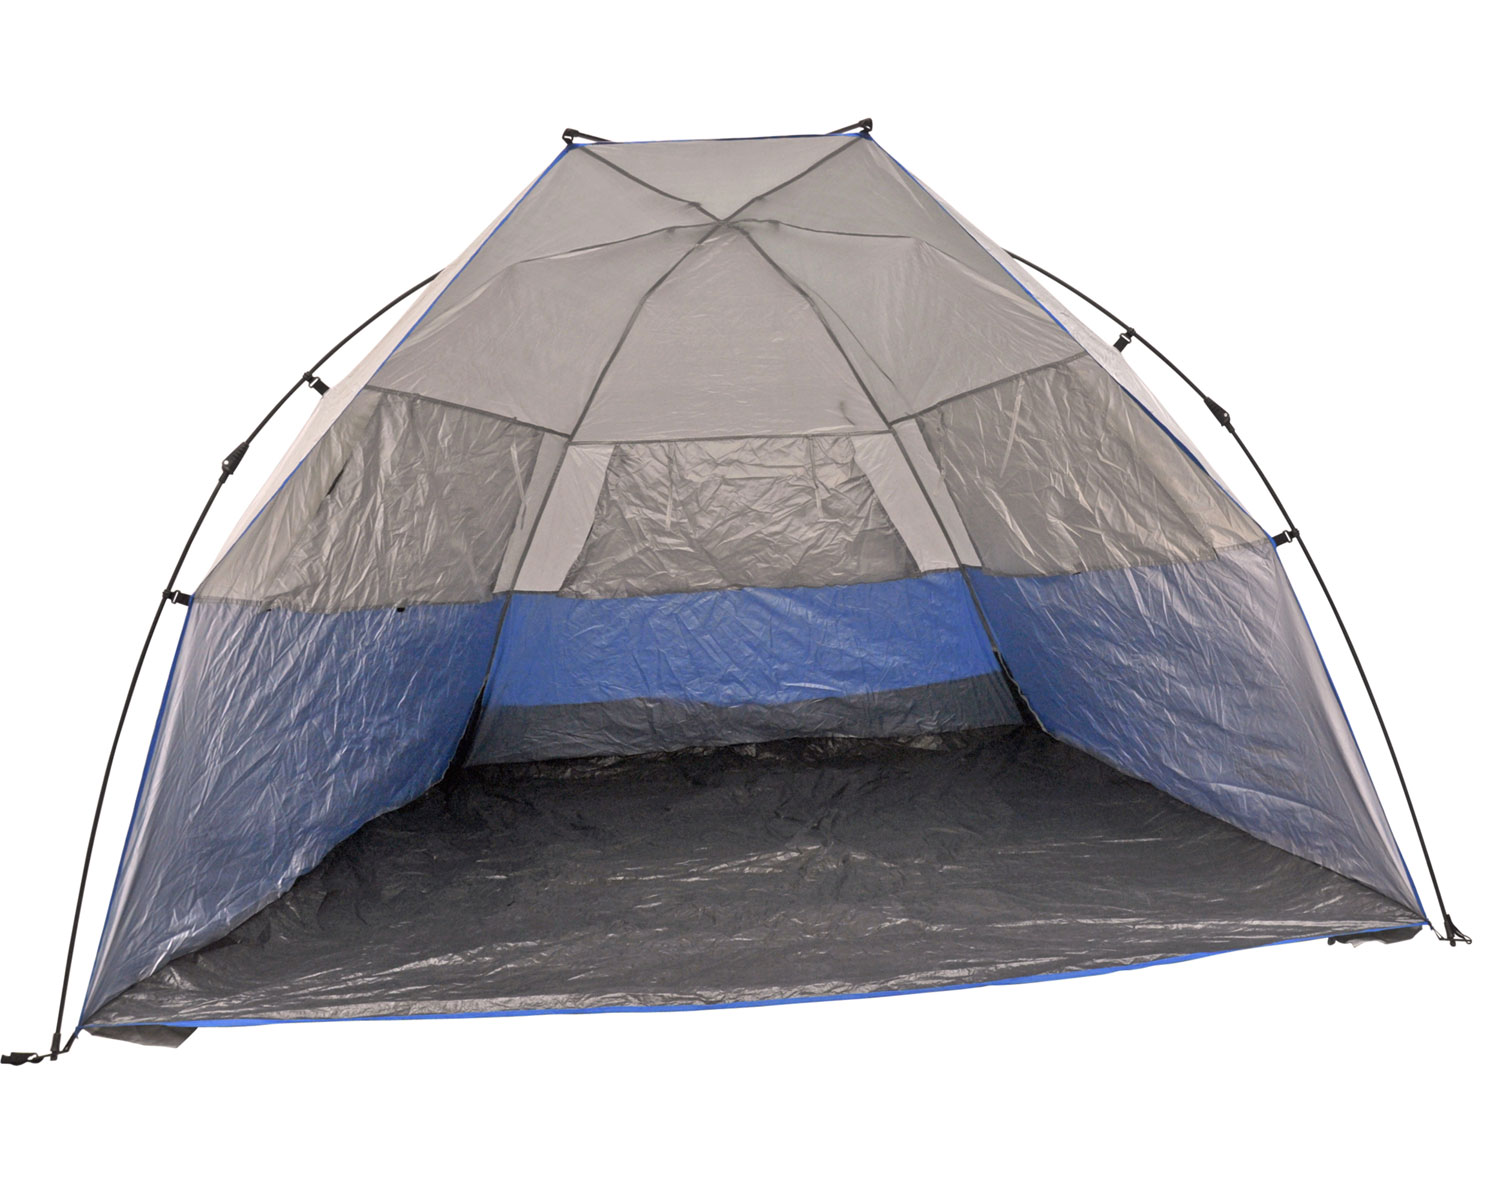 Instant Tent Shelter : Deluxe instant popup beach tent shelter cabana upf